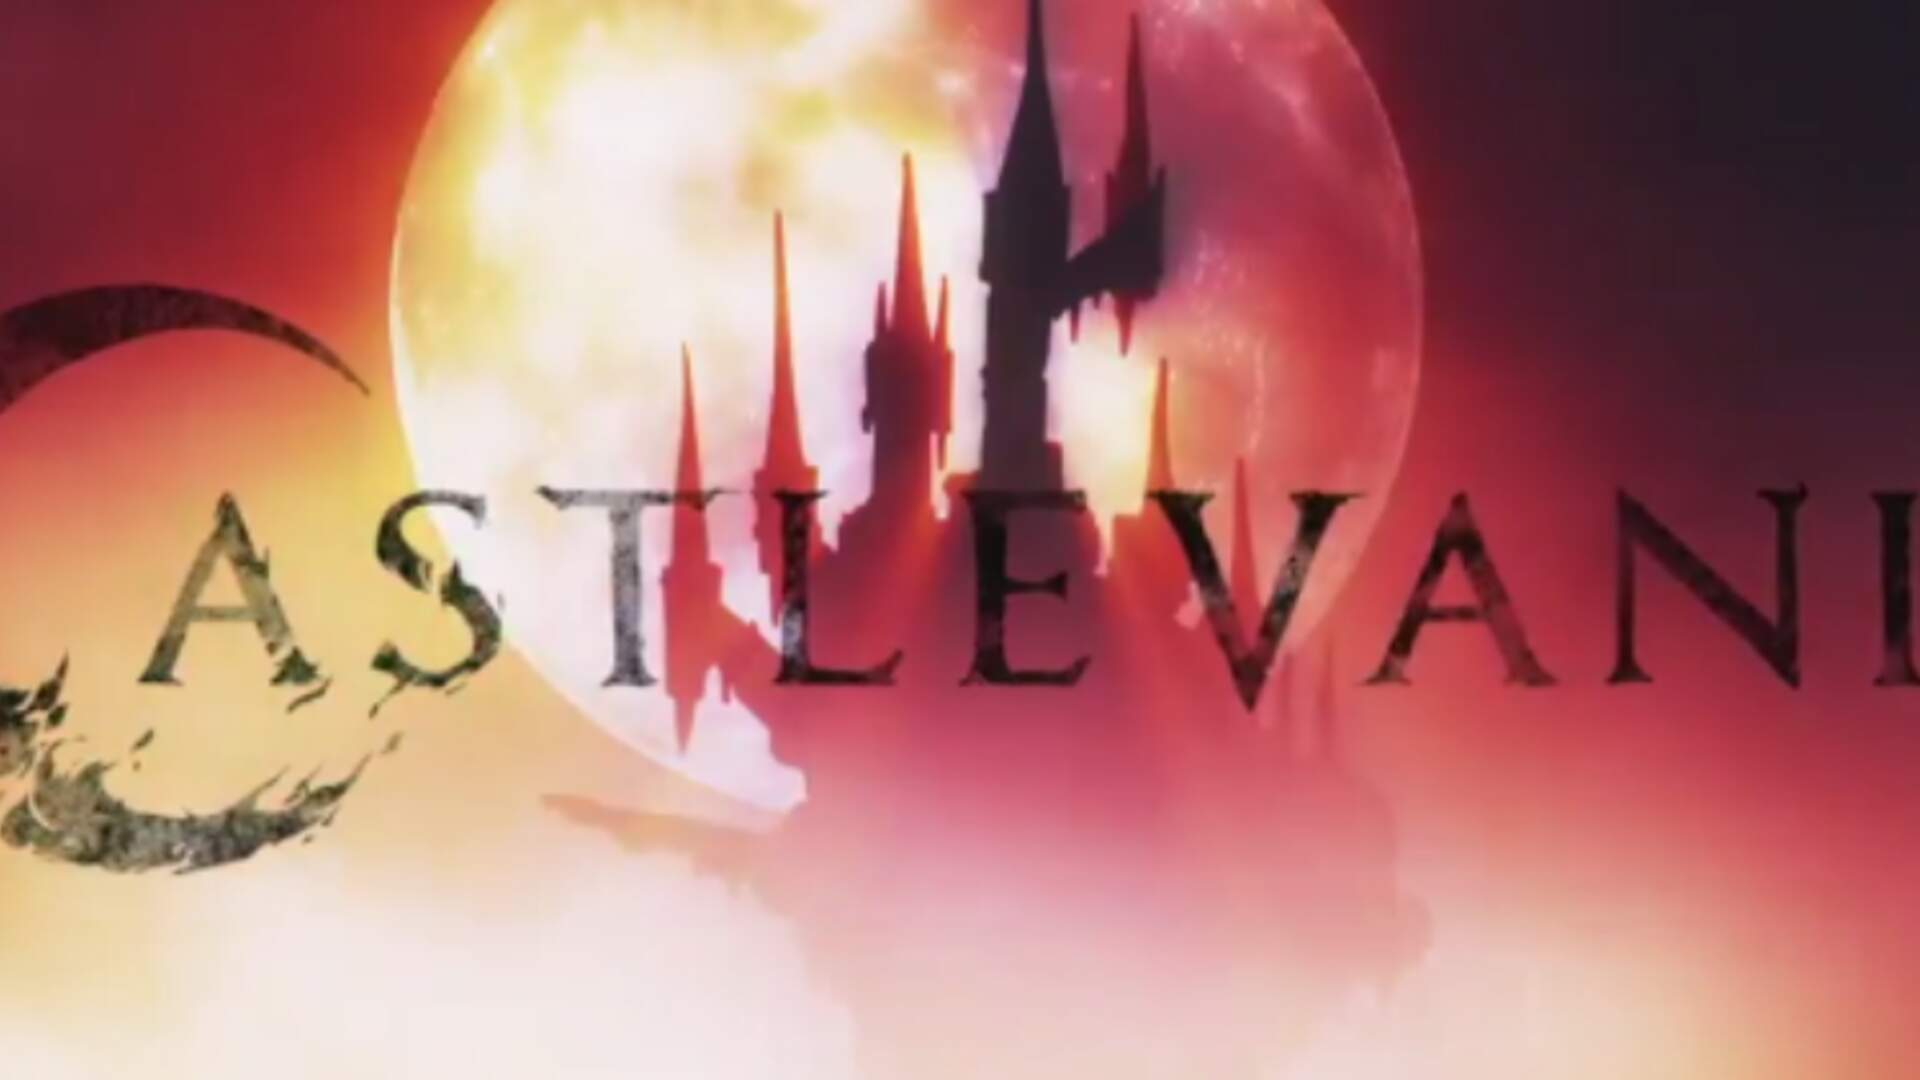 It's Been One Day but Netflix Renewed Castlevania for a Second Season with More Episodes